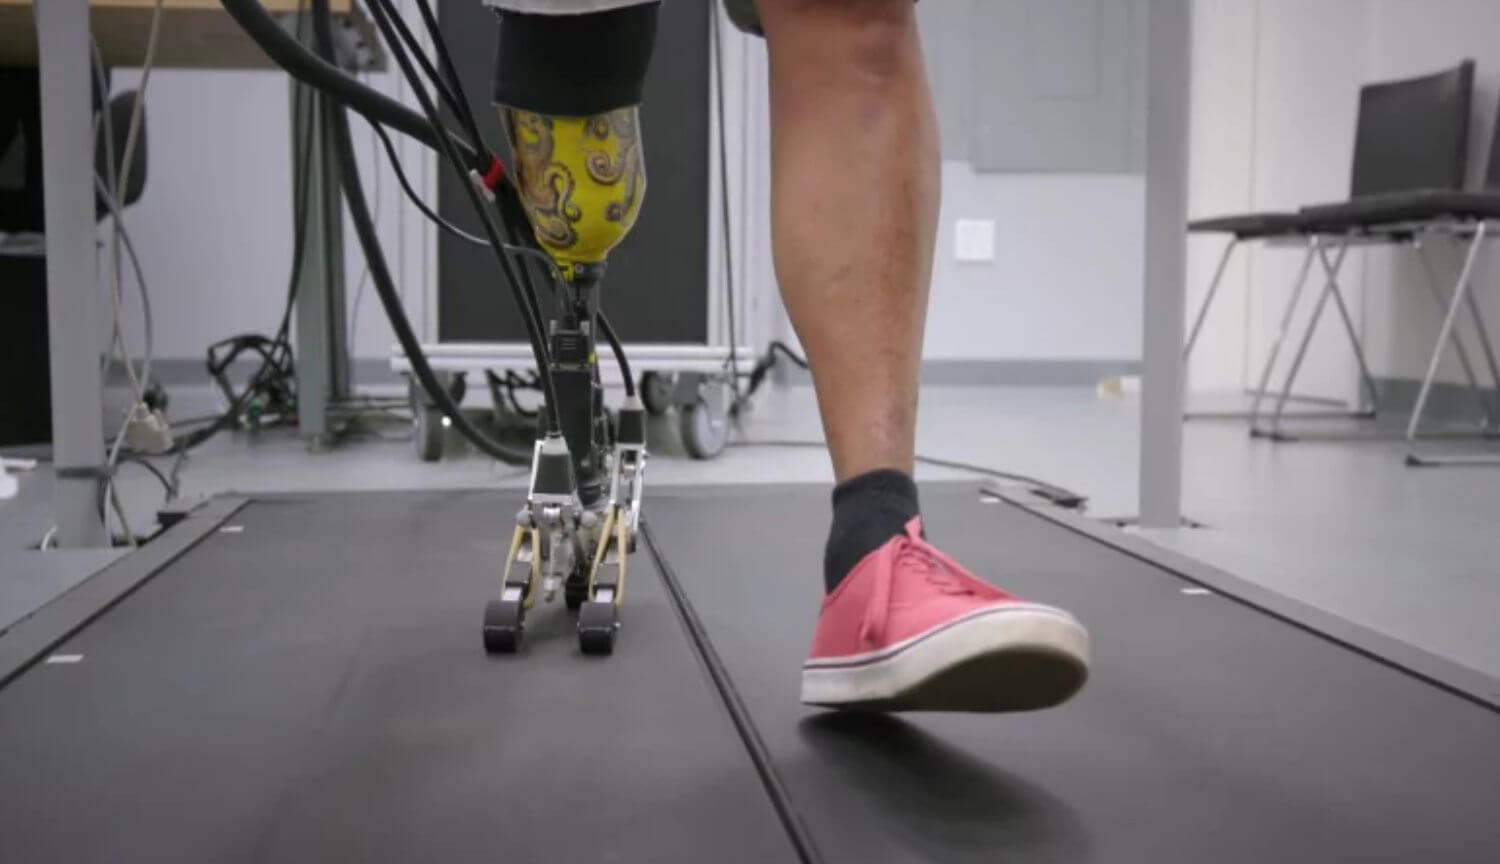 Designed prosthetic leg with realistic foot